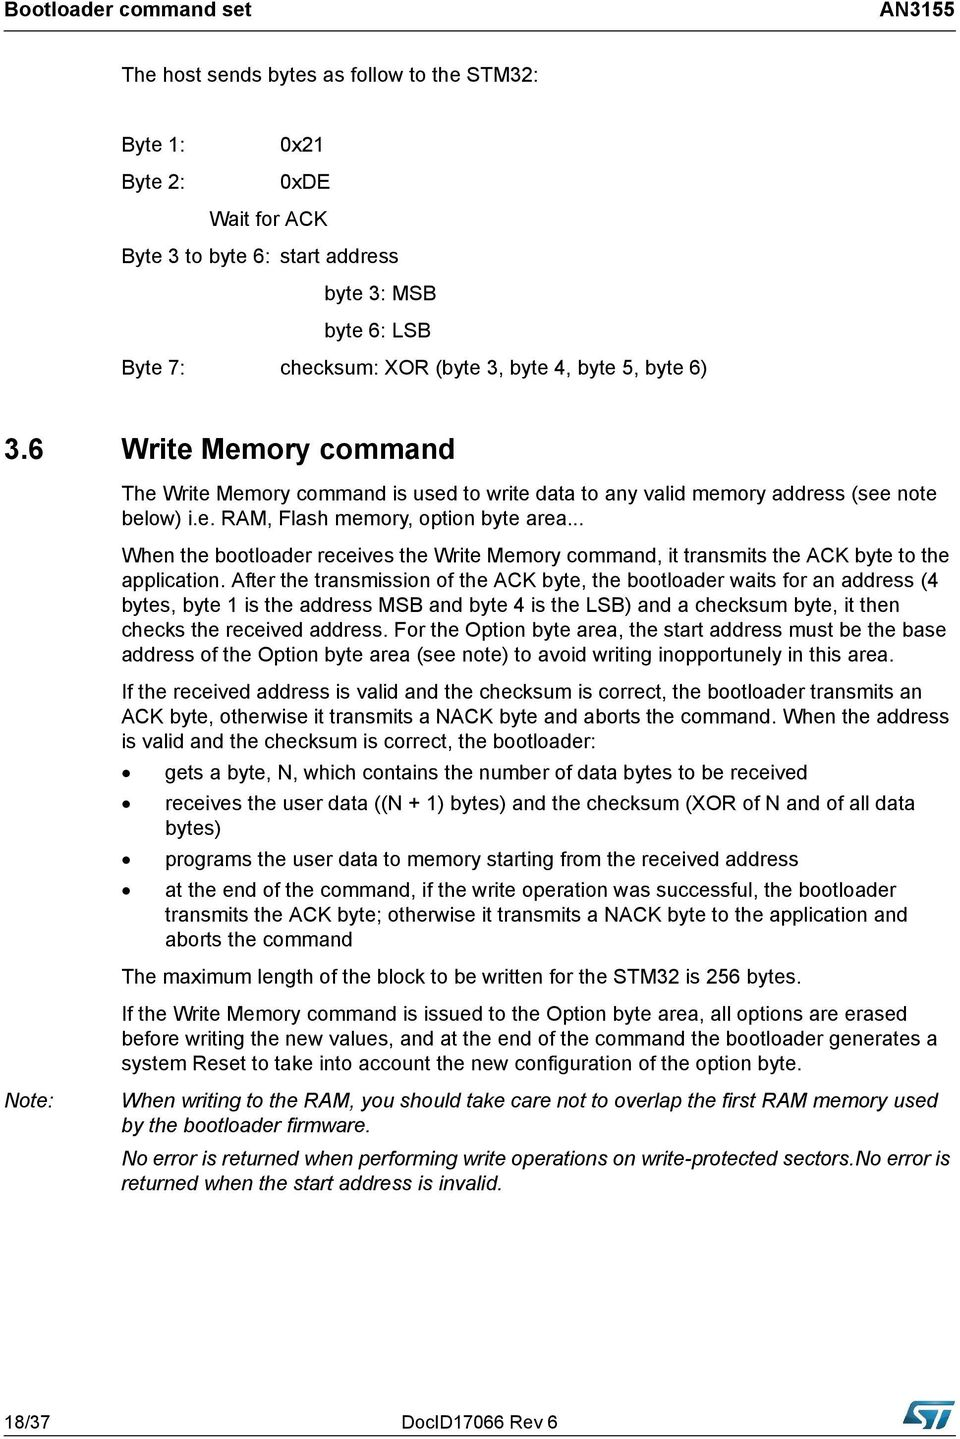 .. When the bootloader receives the Write Memory command, it transmits the ACK byte to the application.